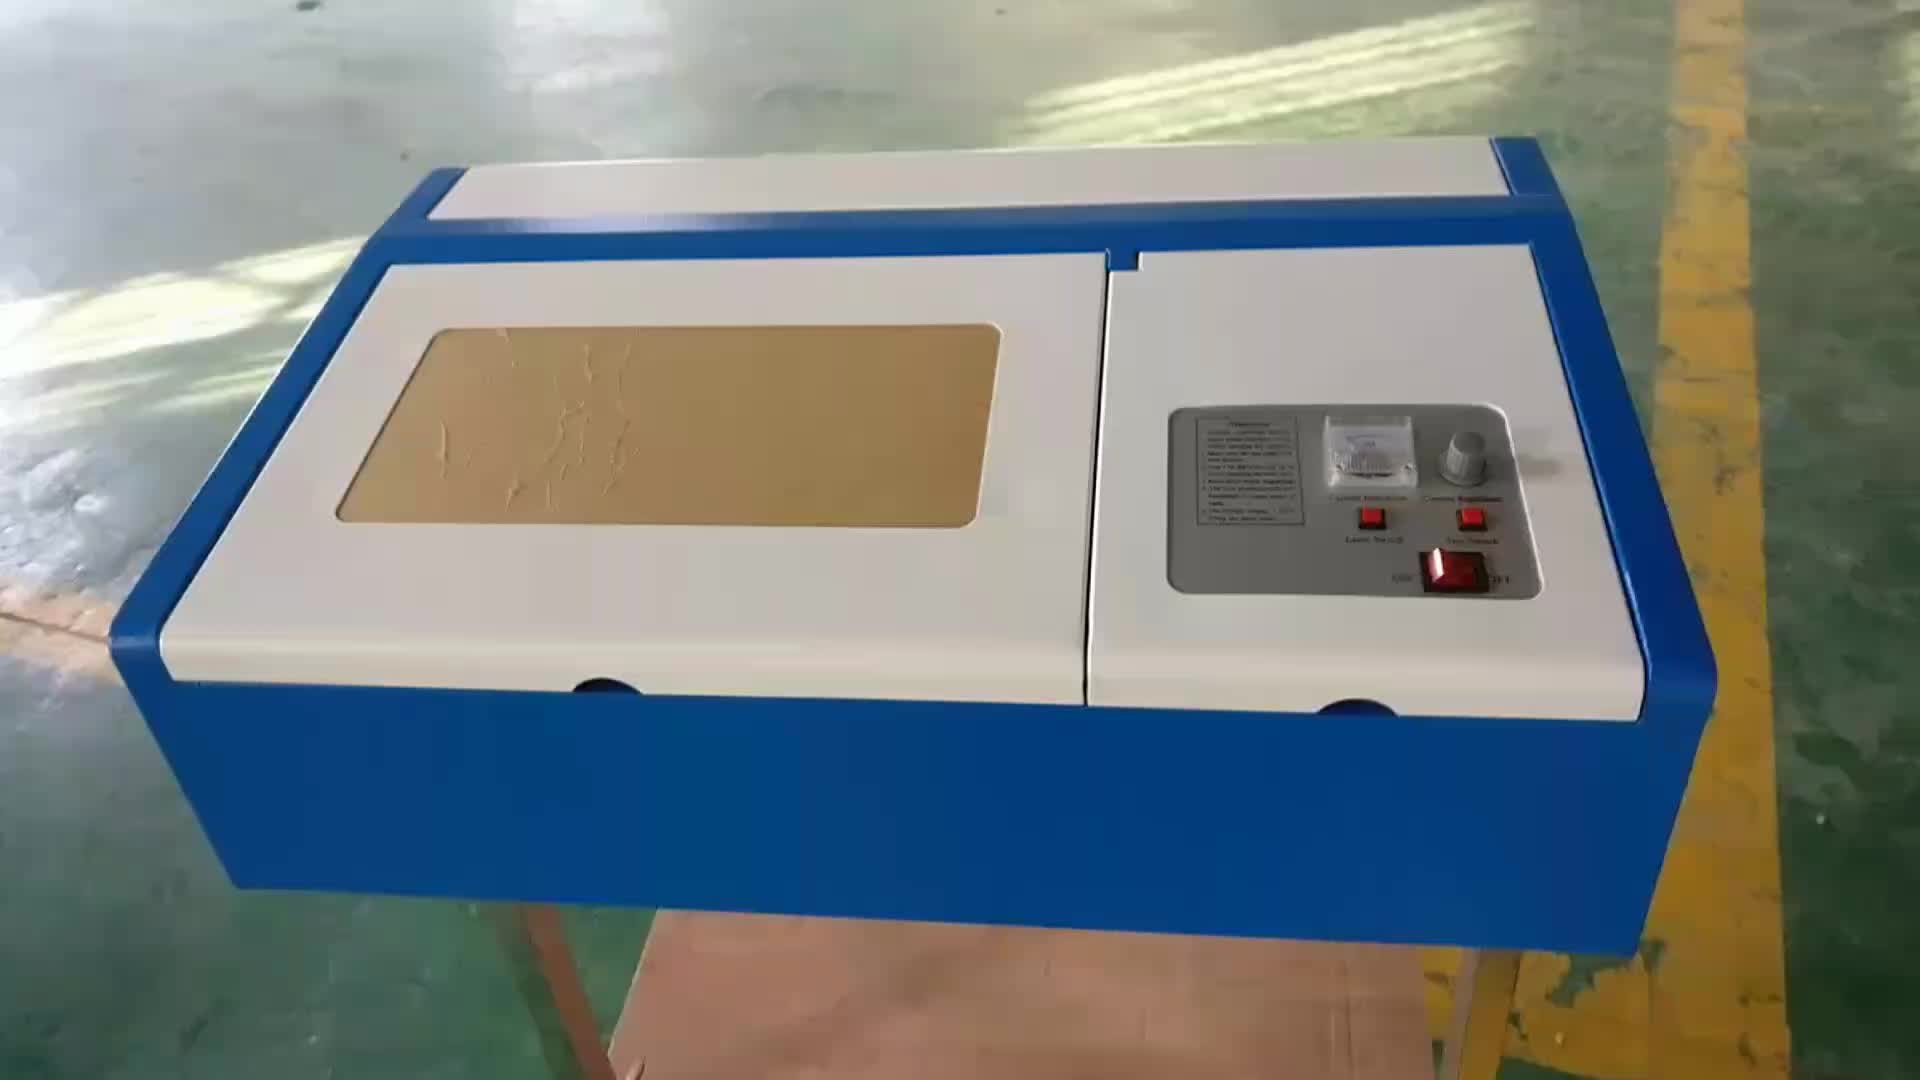 Co2 Laser Engraving Machine 40w Small Laser Cutting Machine Price K40 Laser  Engraver - Buy Co2 Laser Engraving Machine 40w,Small Laser Cutting Machine